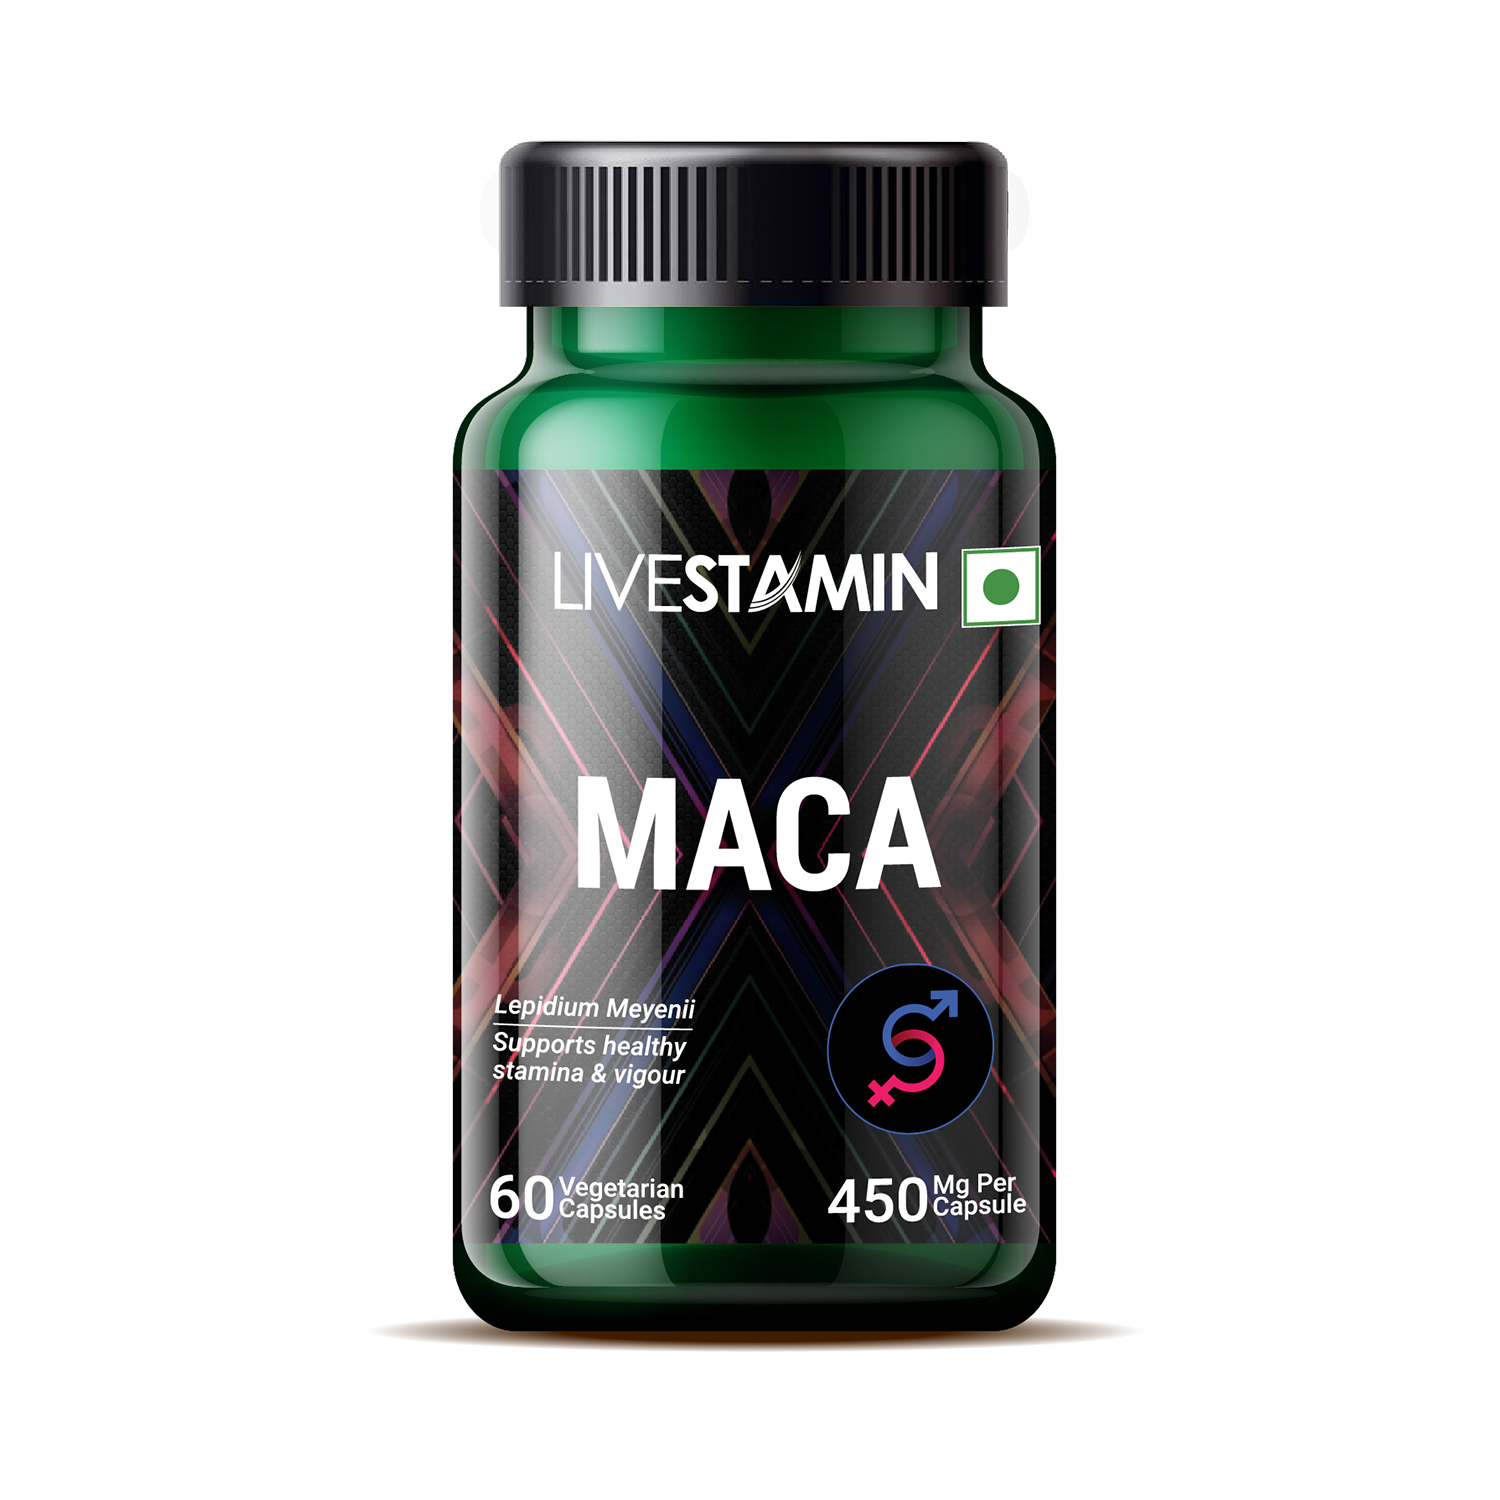 Maca Herbal Extract Capsules 450mg With Lepidium meyenii For Energy and Stamina Supplement Private Label GMP- ISO